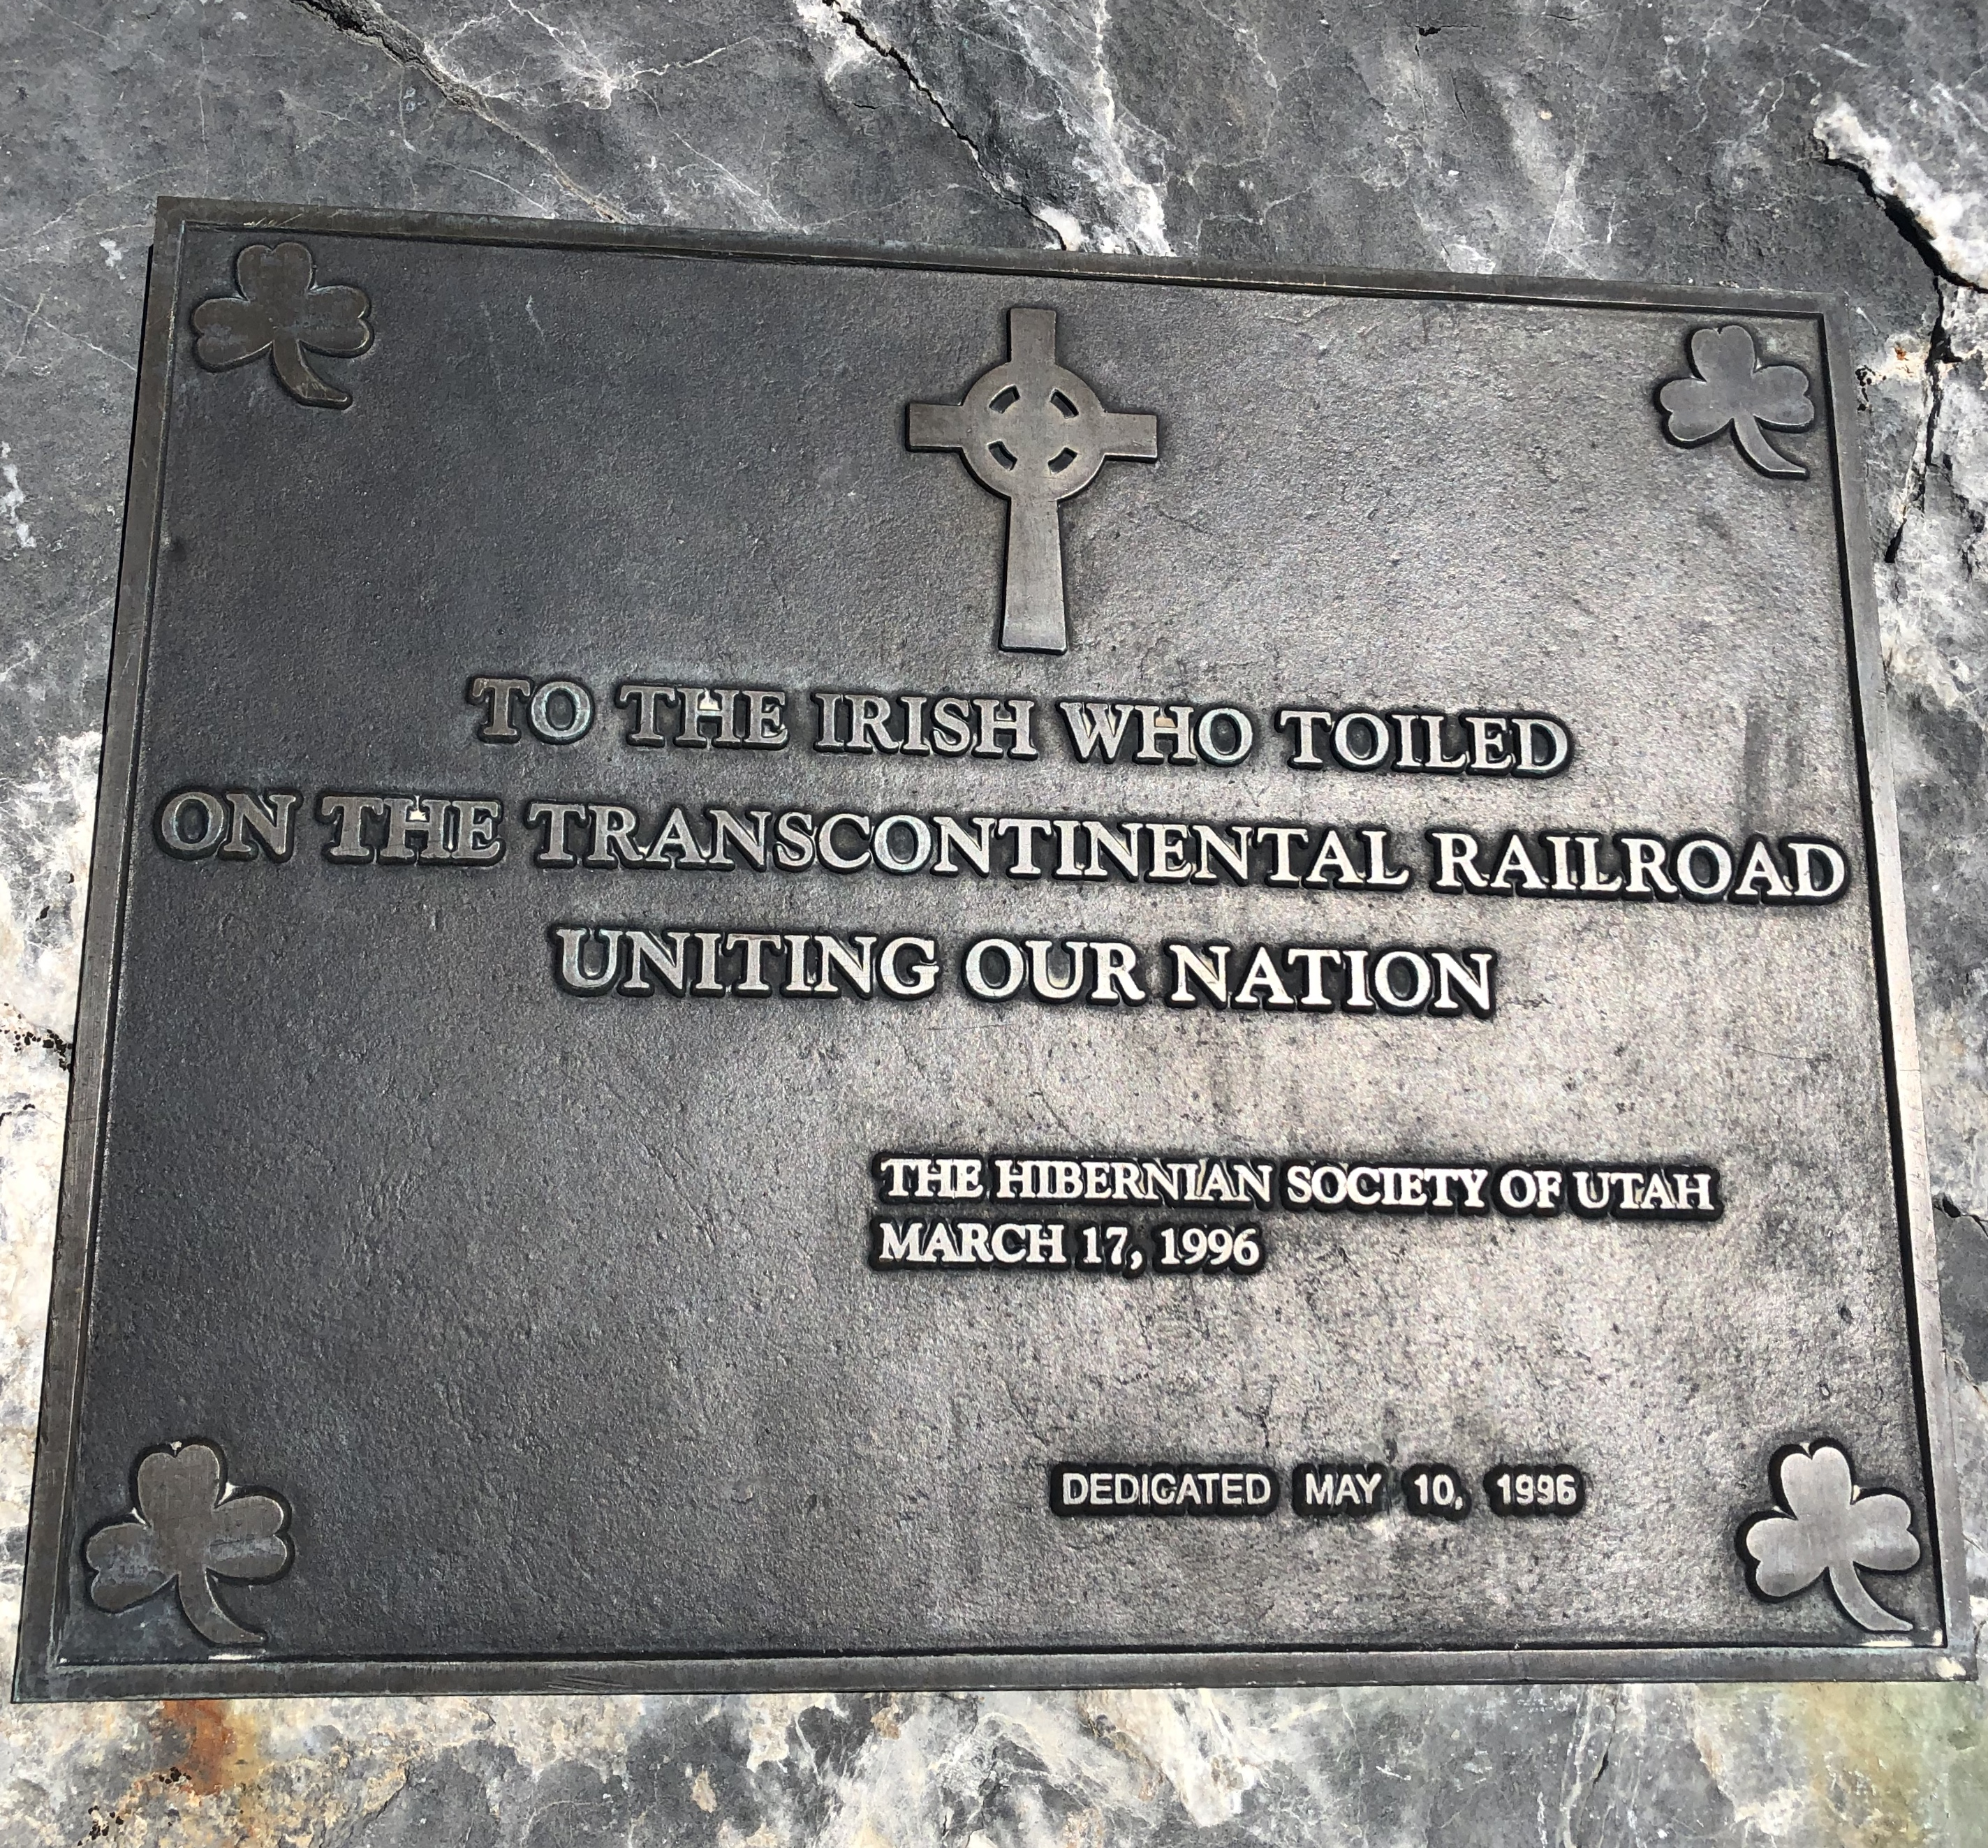 Plaque made to thank all the Irish who worked on the transcontinental railroad.